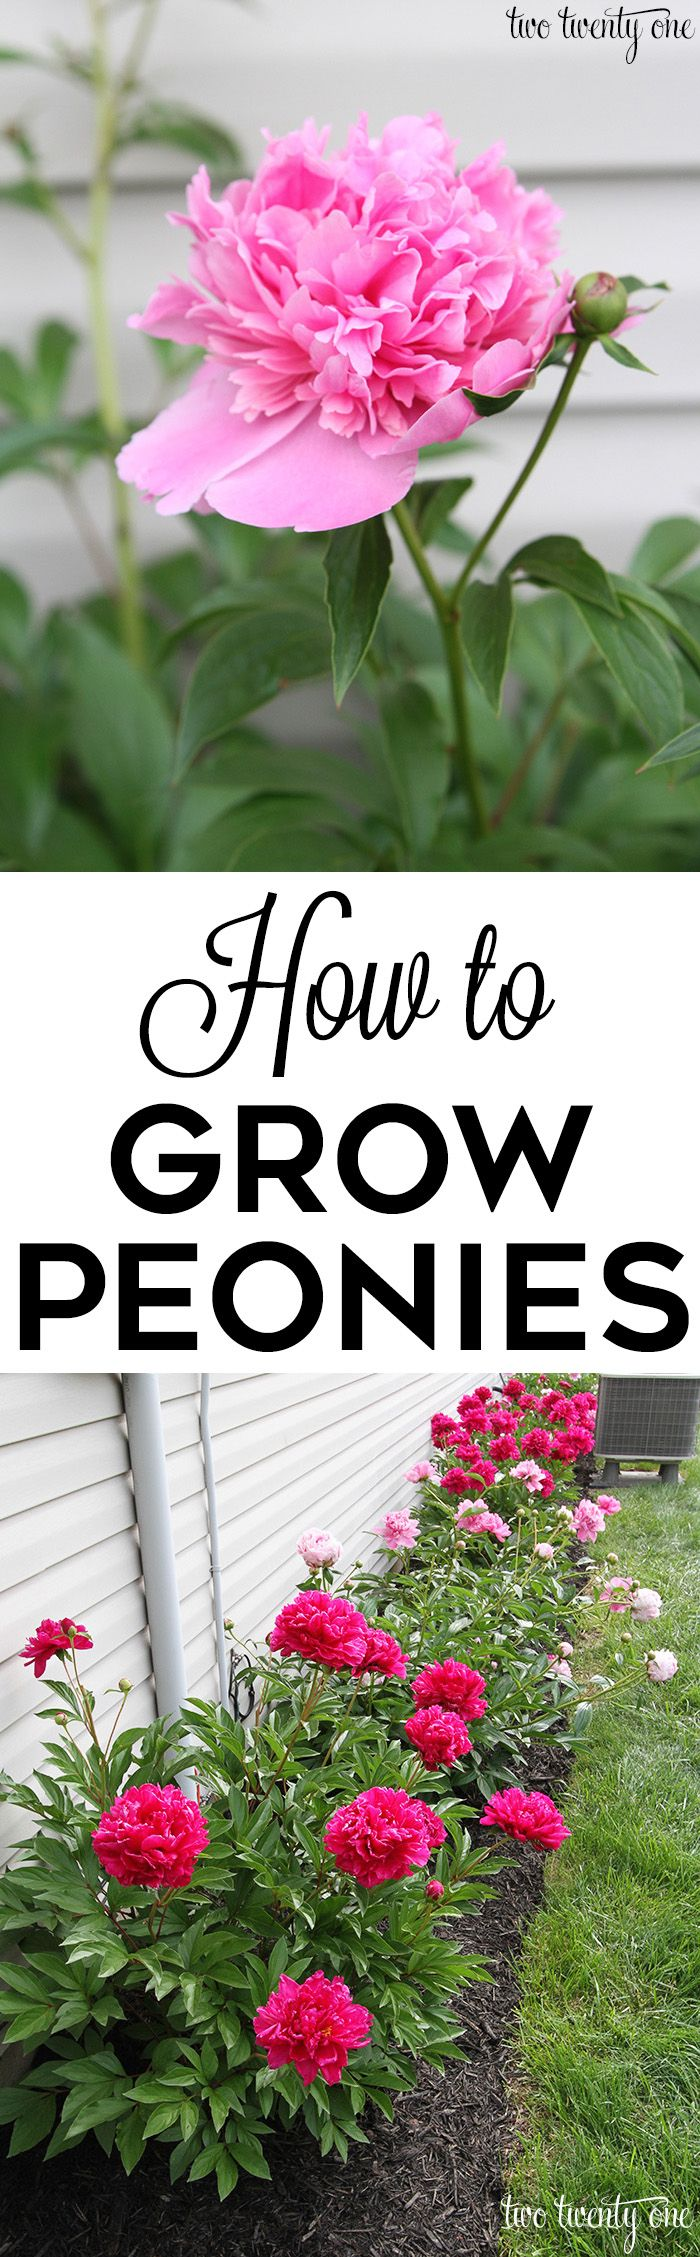 growing peonies